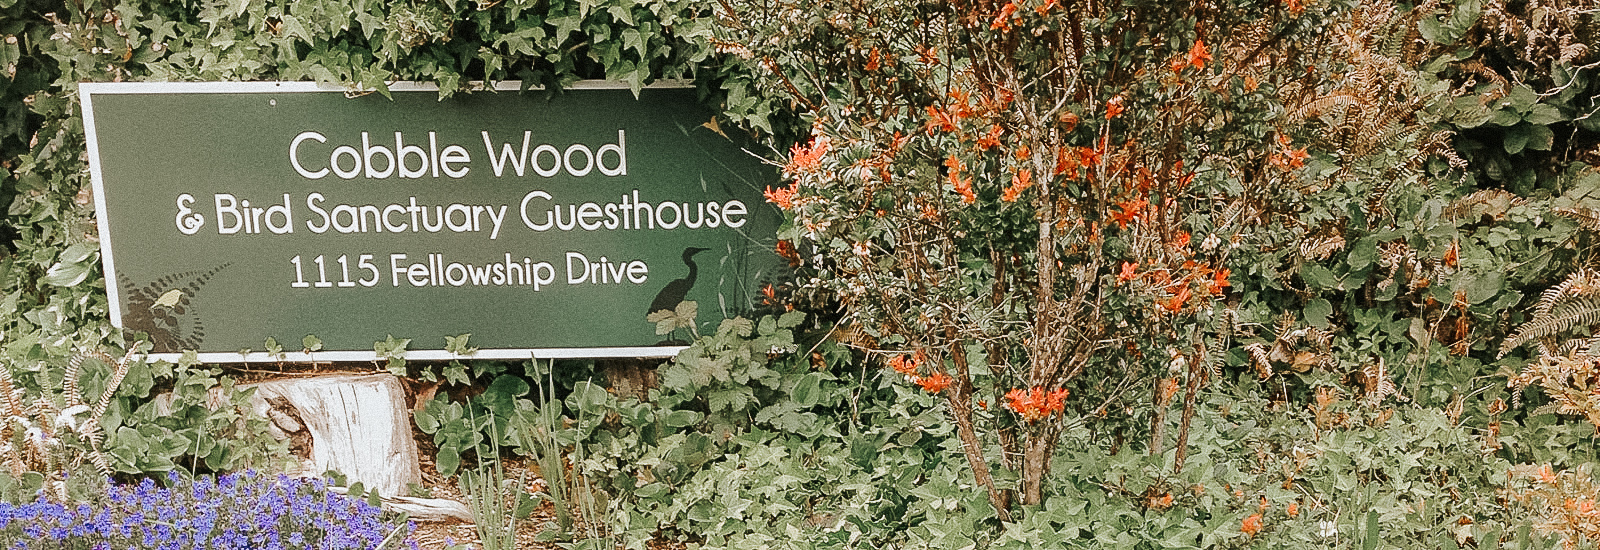 Cobble Wood & Bird Sanctuary Guesthouses welcome sign